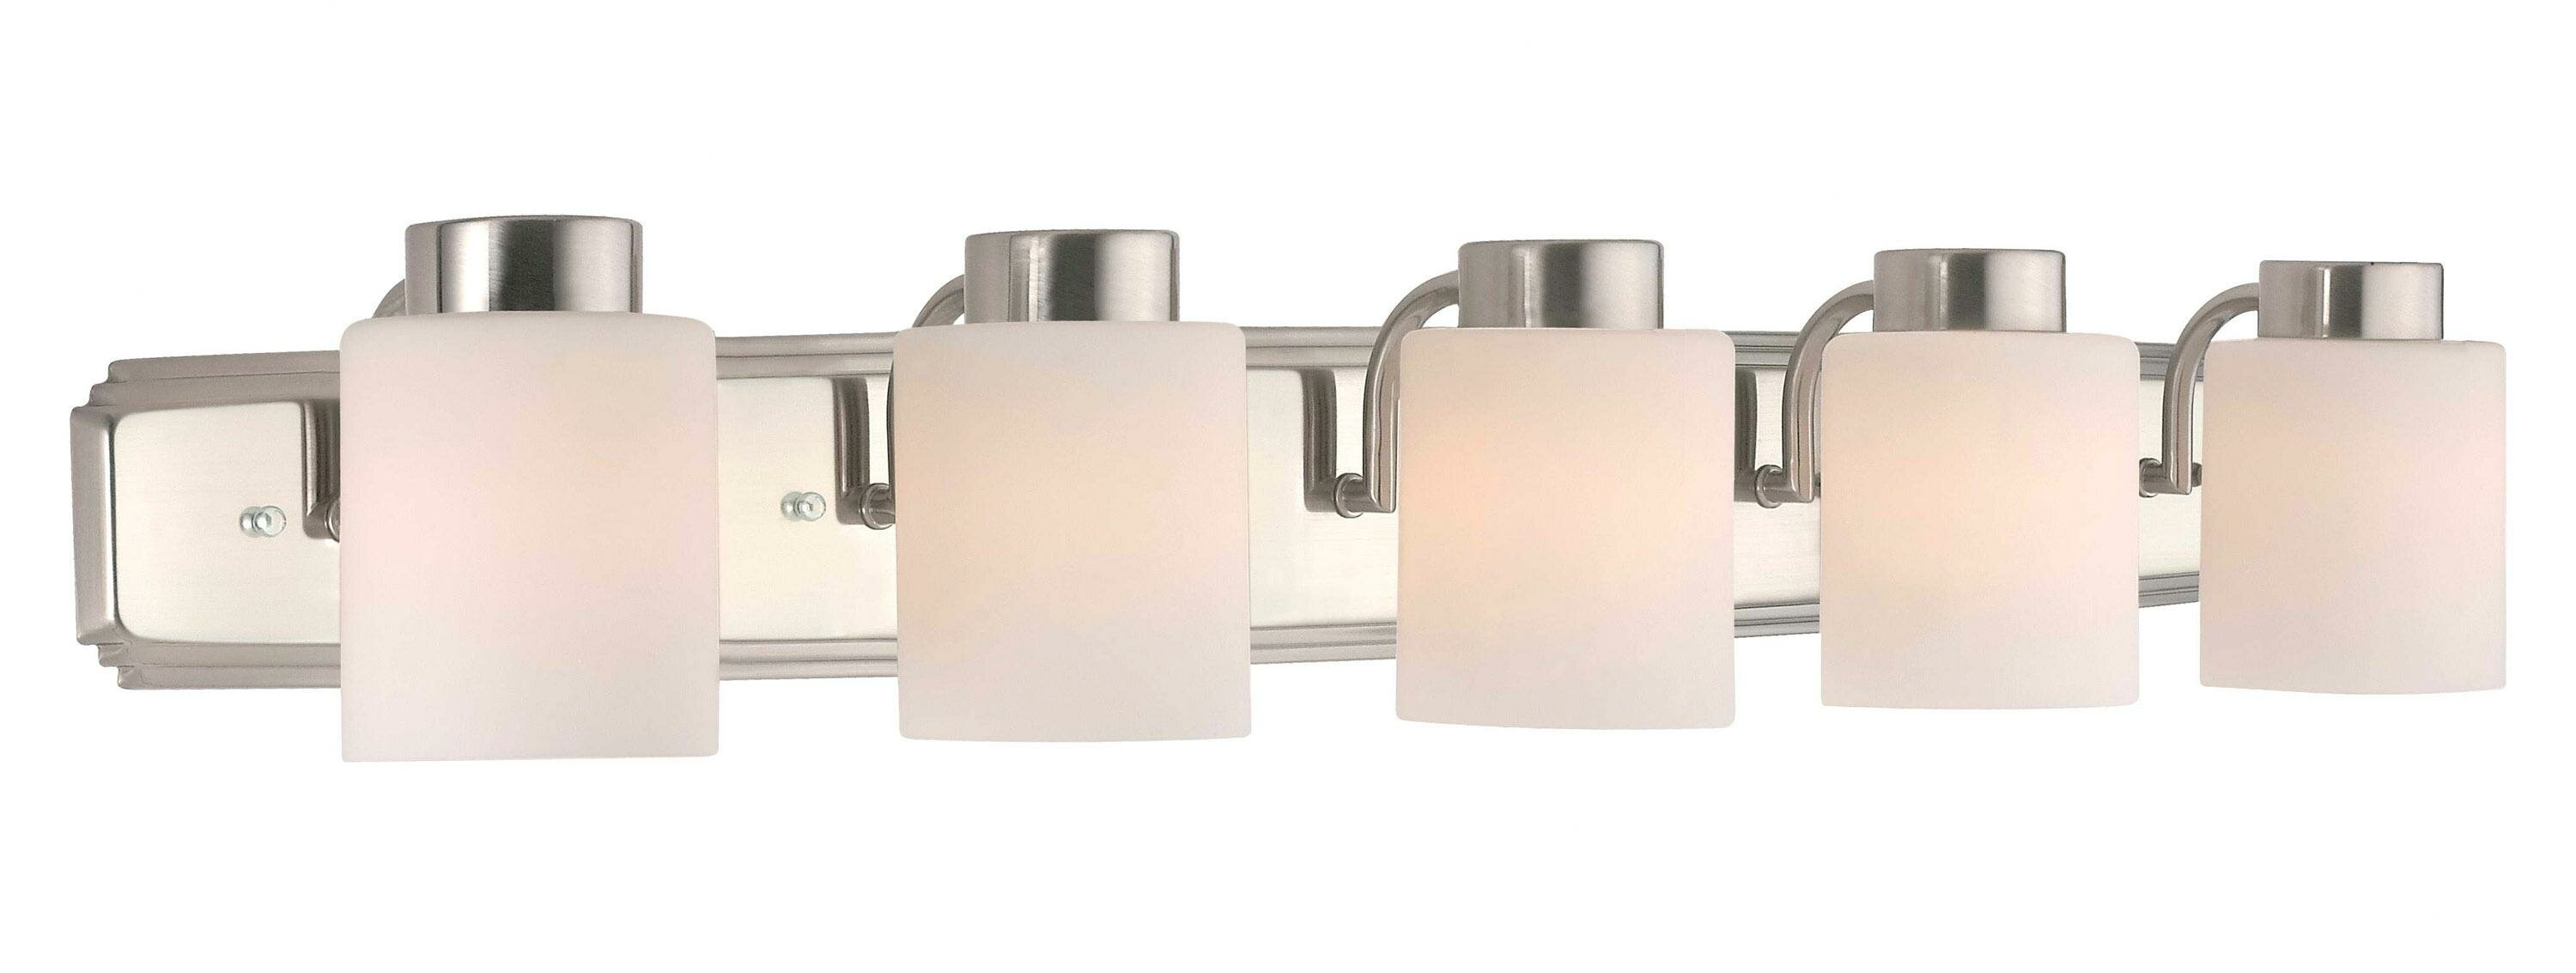 Deon 5 Light Vanity Light Reviews Allmodern